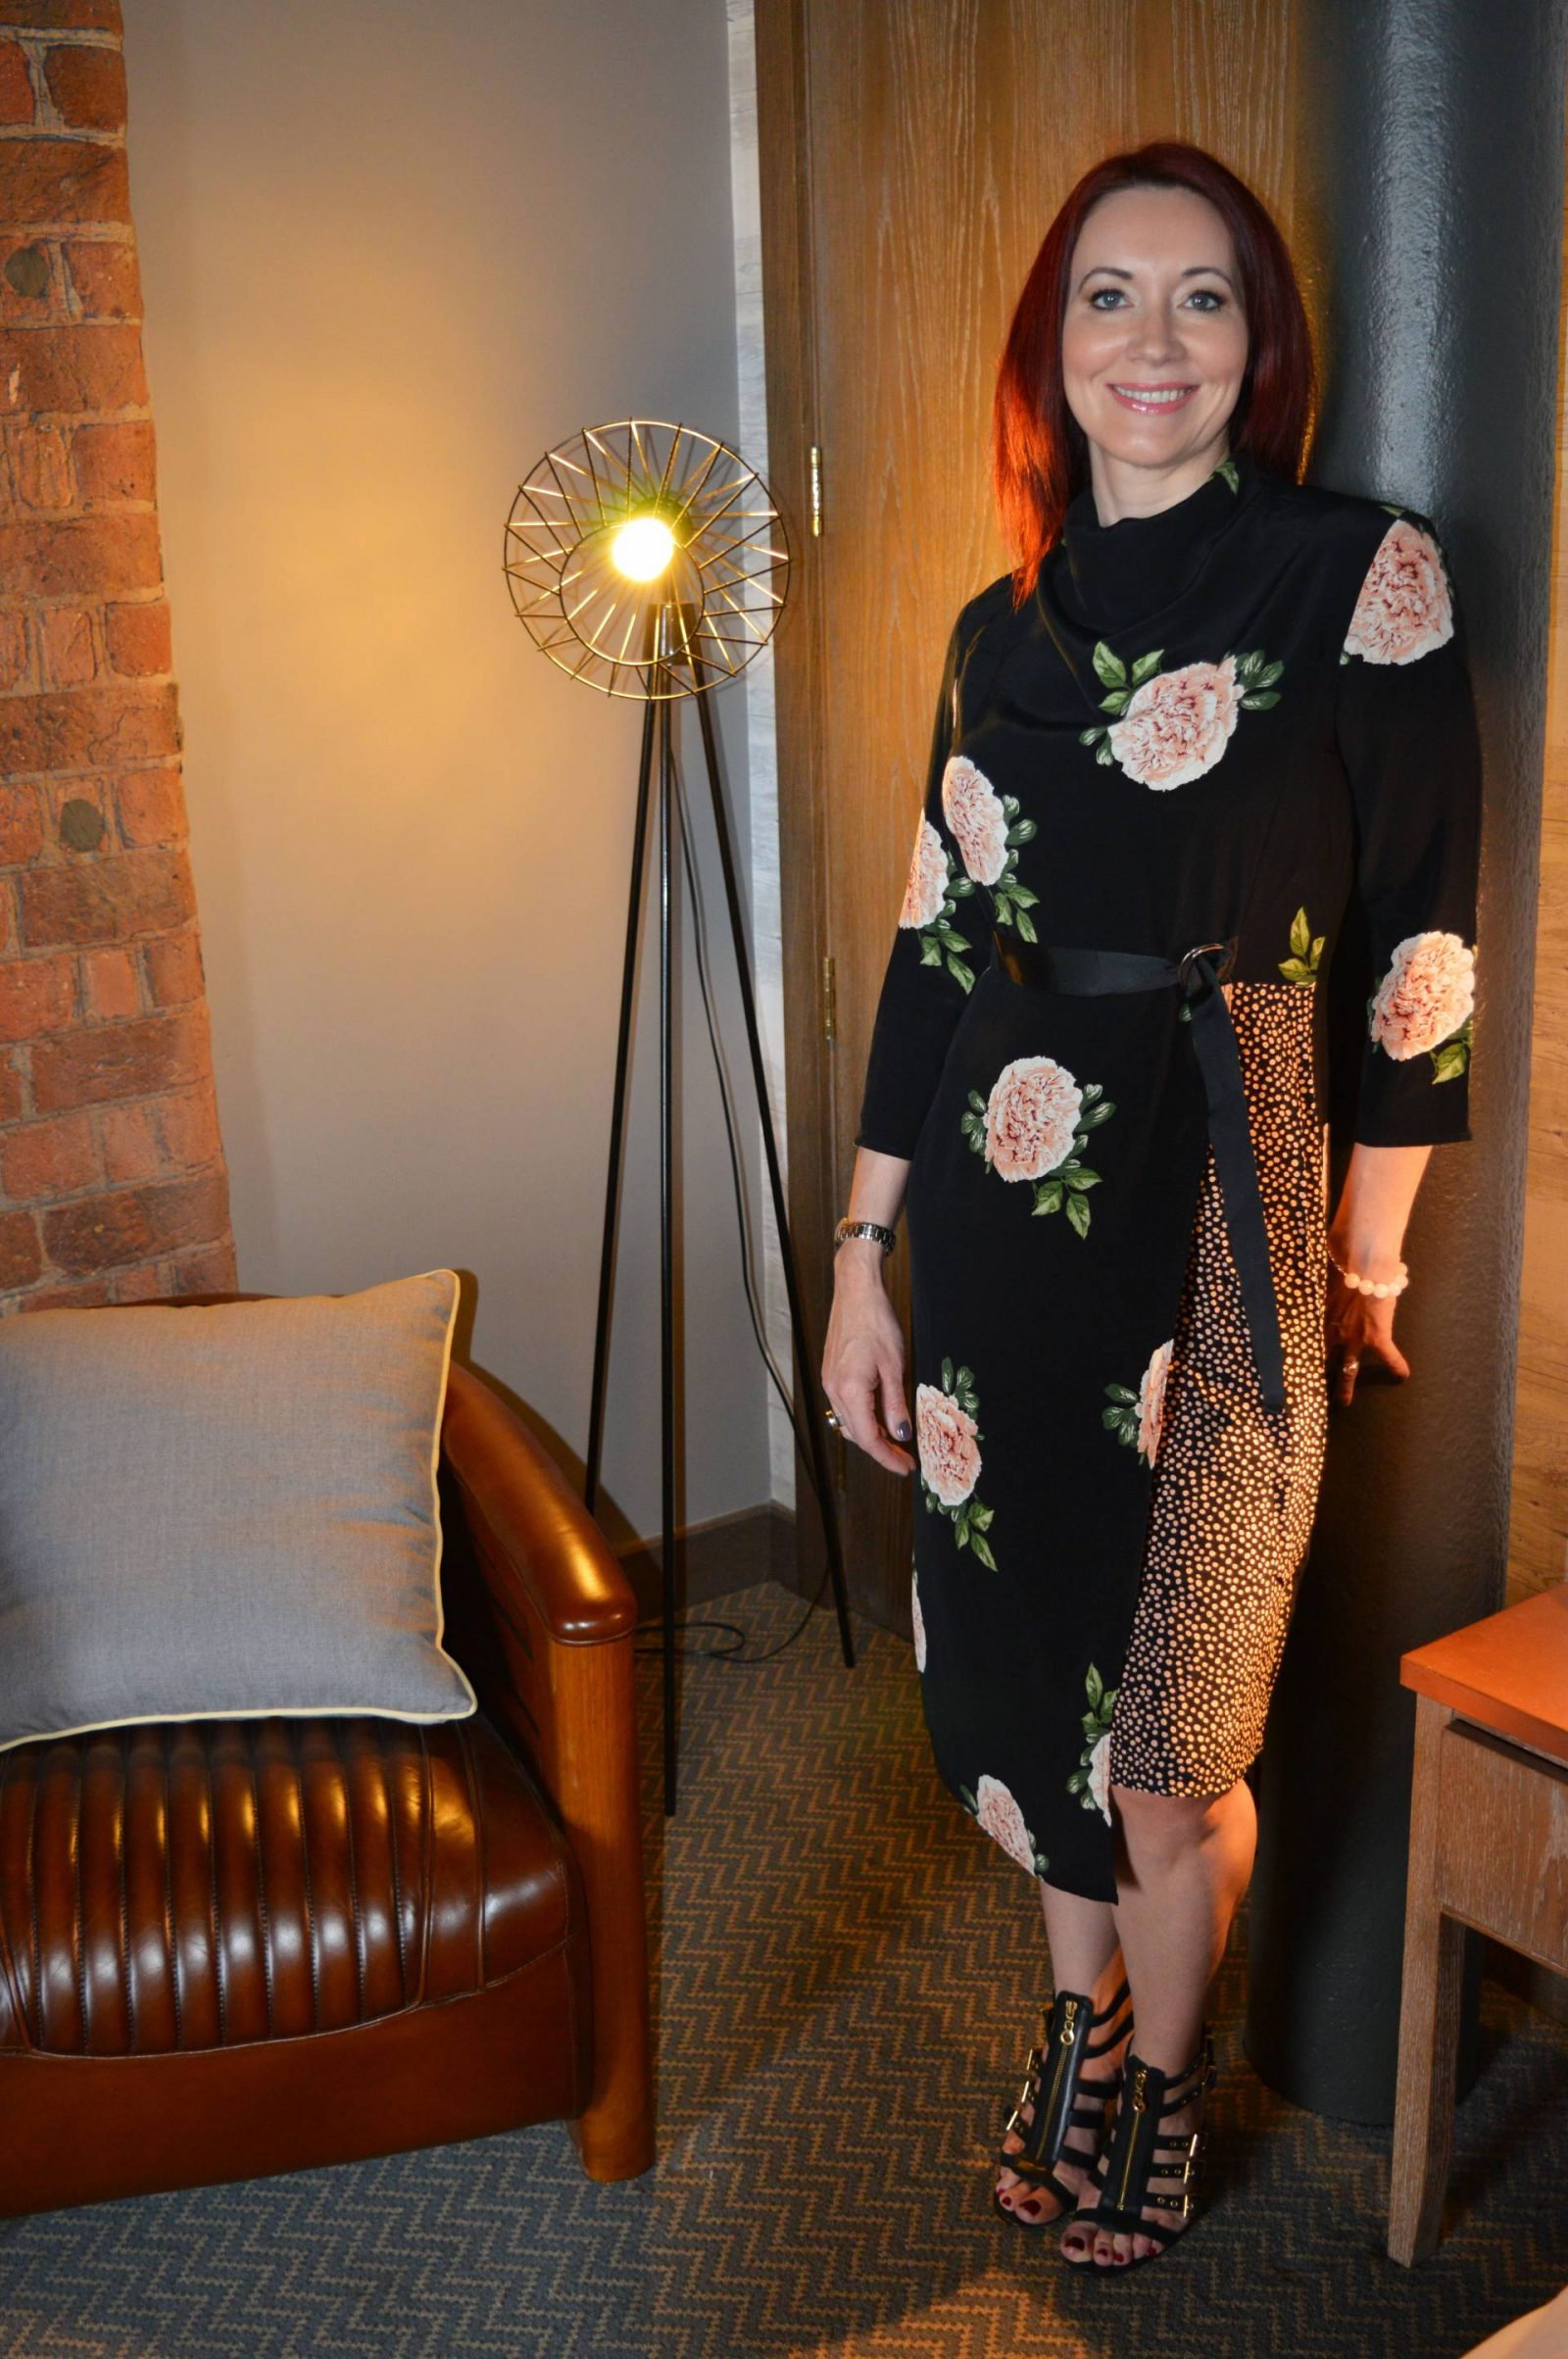 Black Rose Print Dress at the Titanic Hotel Liverpool